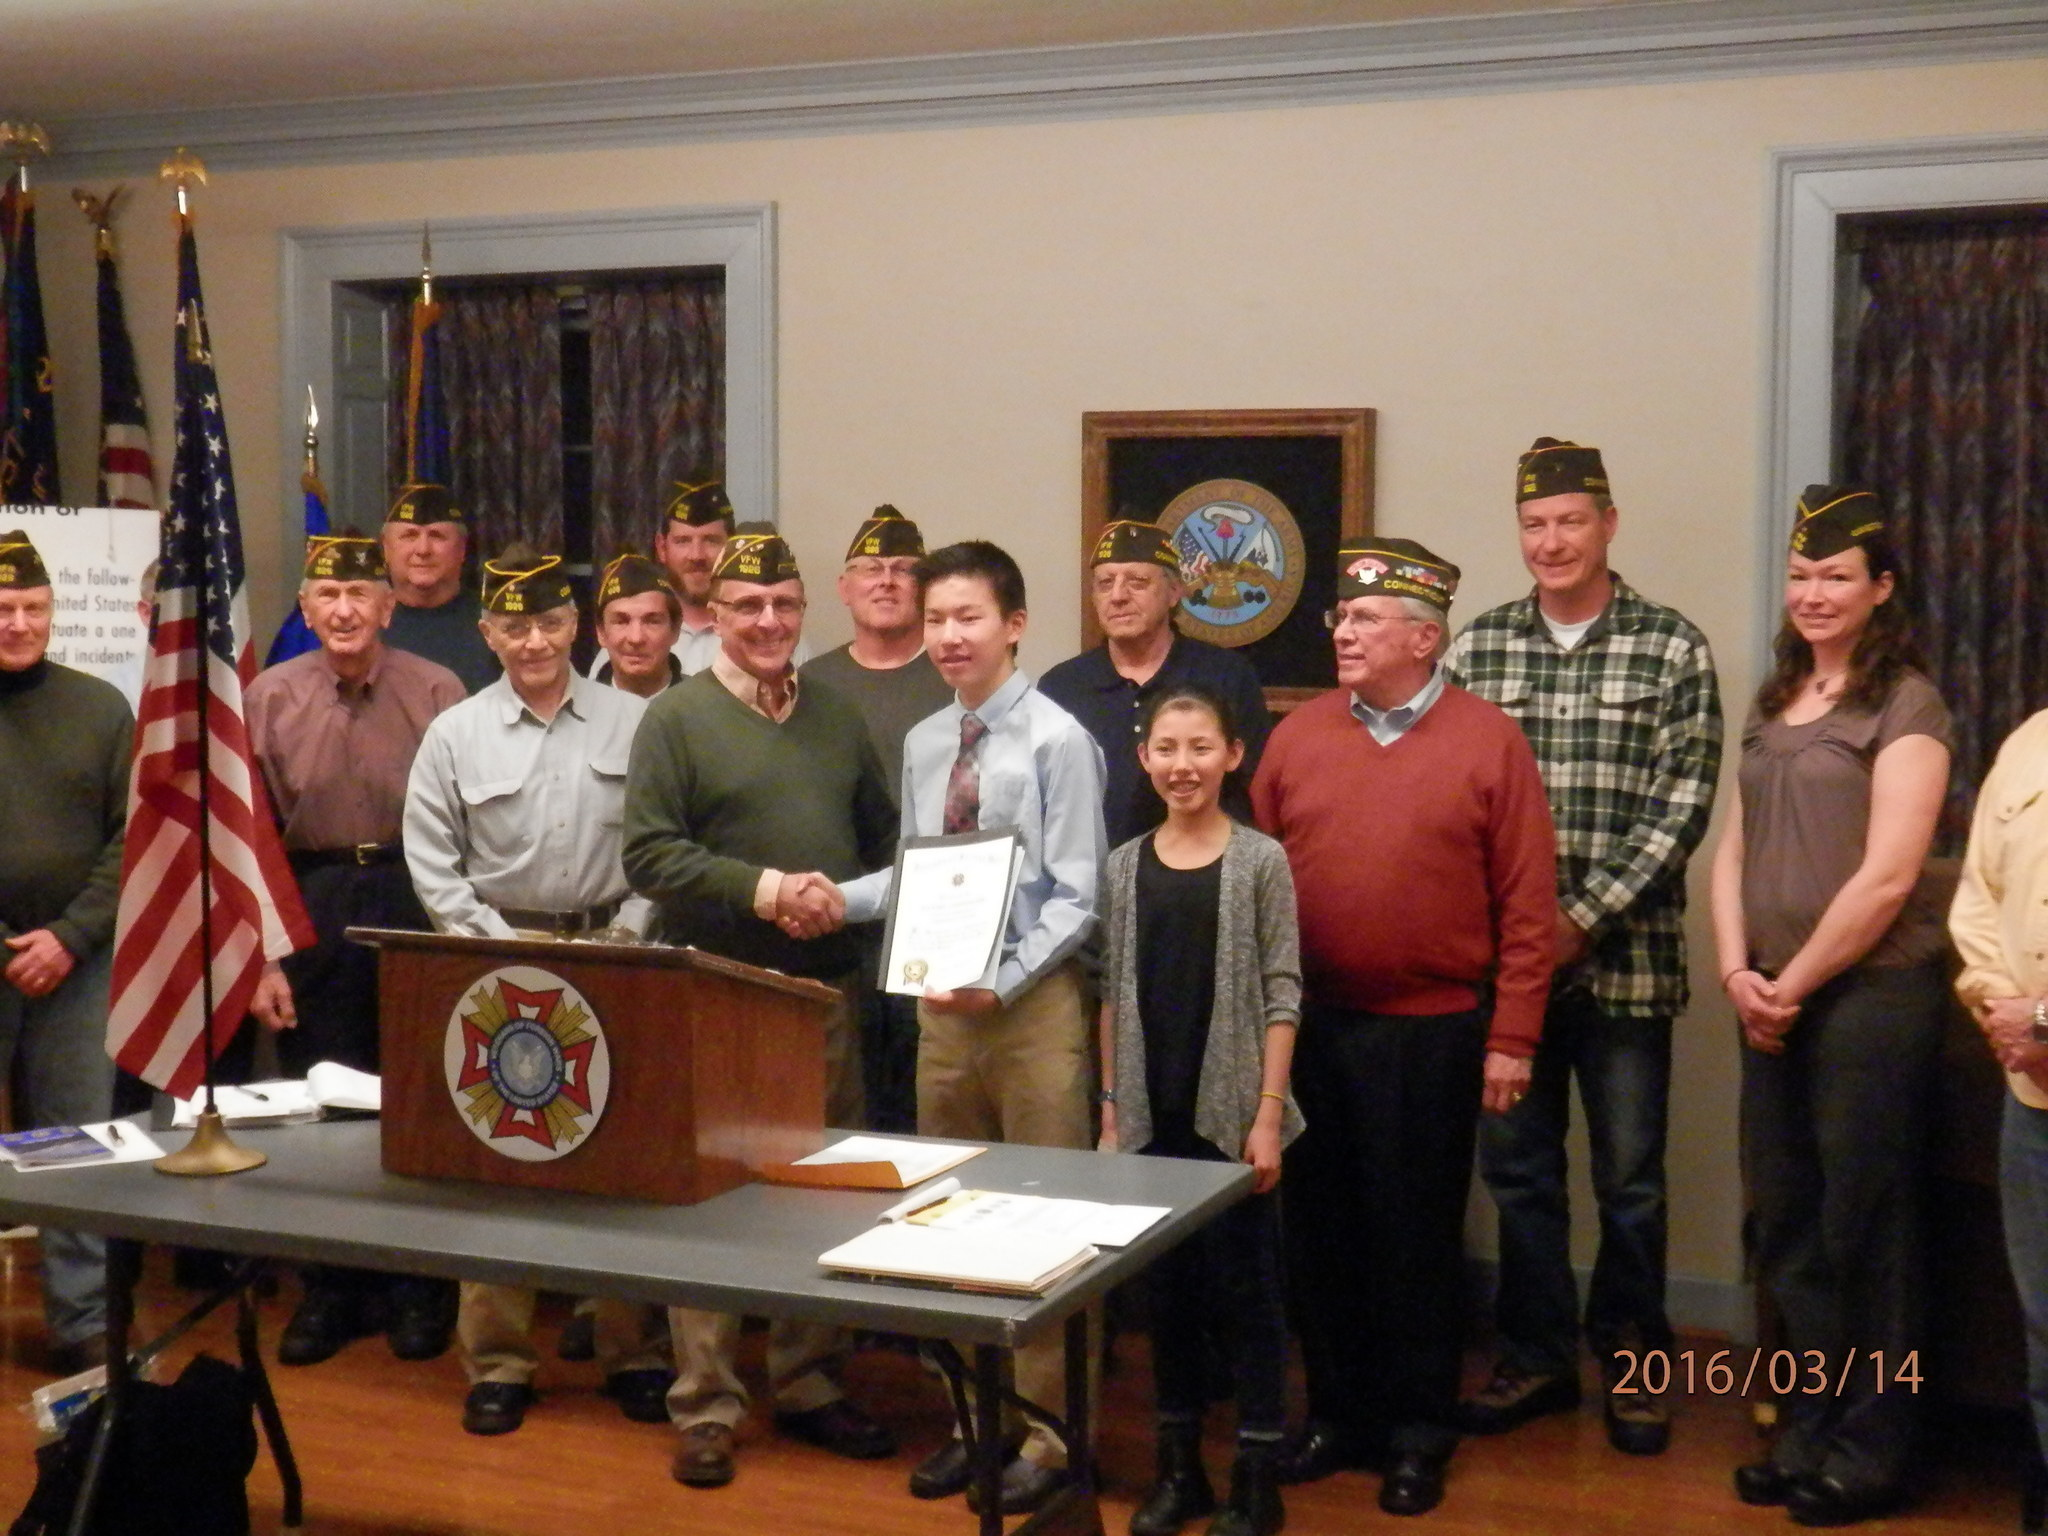 connecticut vfw voice of democracy finalist daniel coppinger connecticut vfw voice of democracy finalist daniel coppinger honored by simsbury veterans of foreign wars post 1926 community